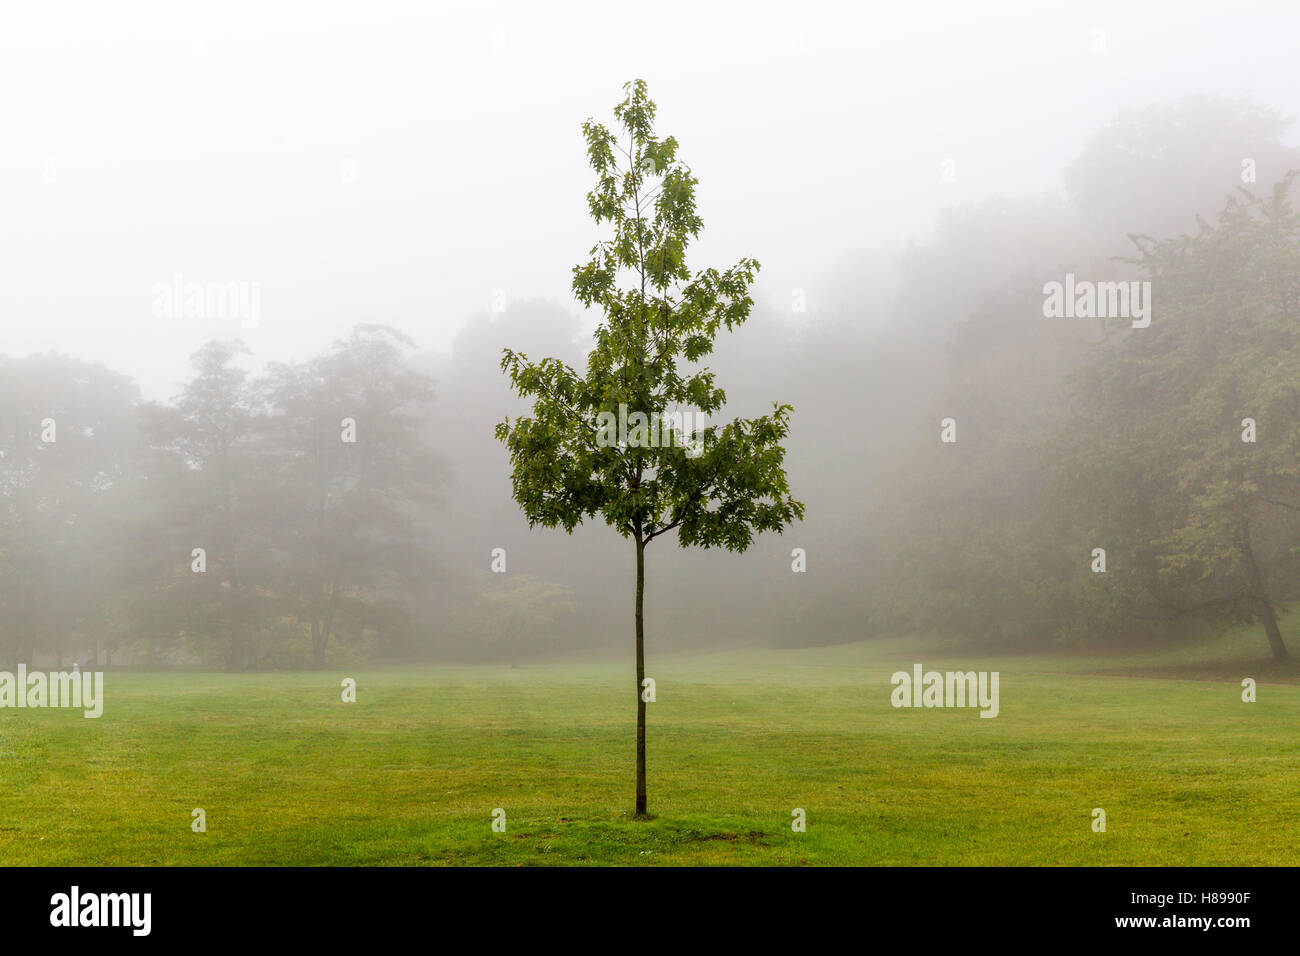 Lone tree in the morning mist - Stock Image